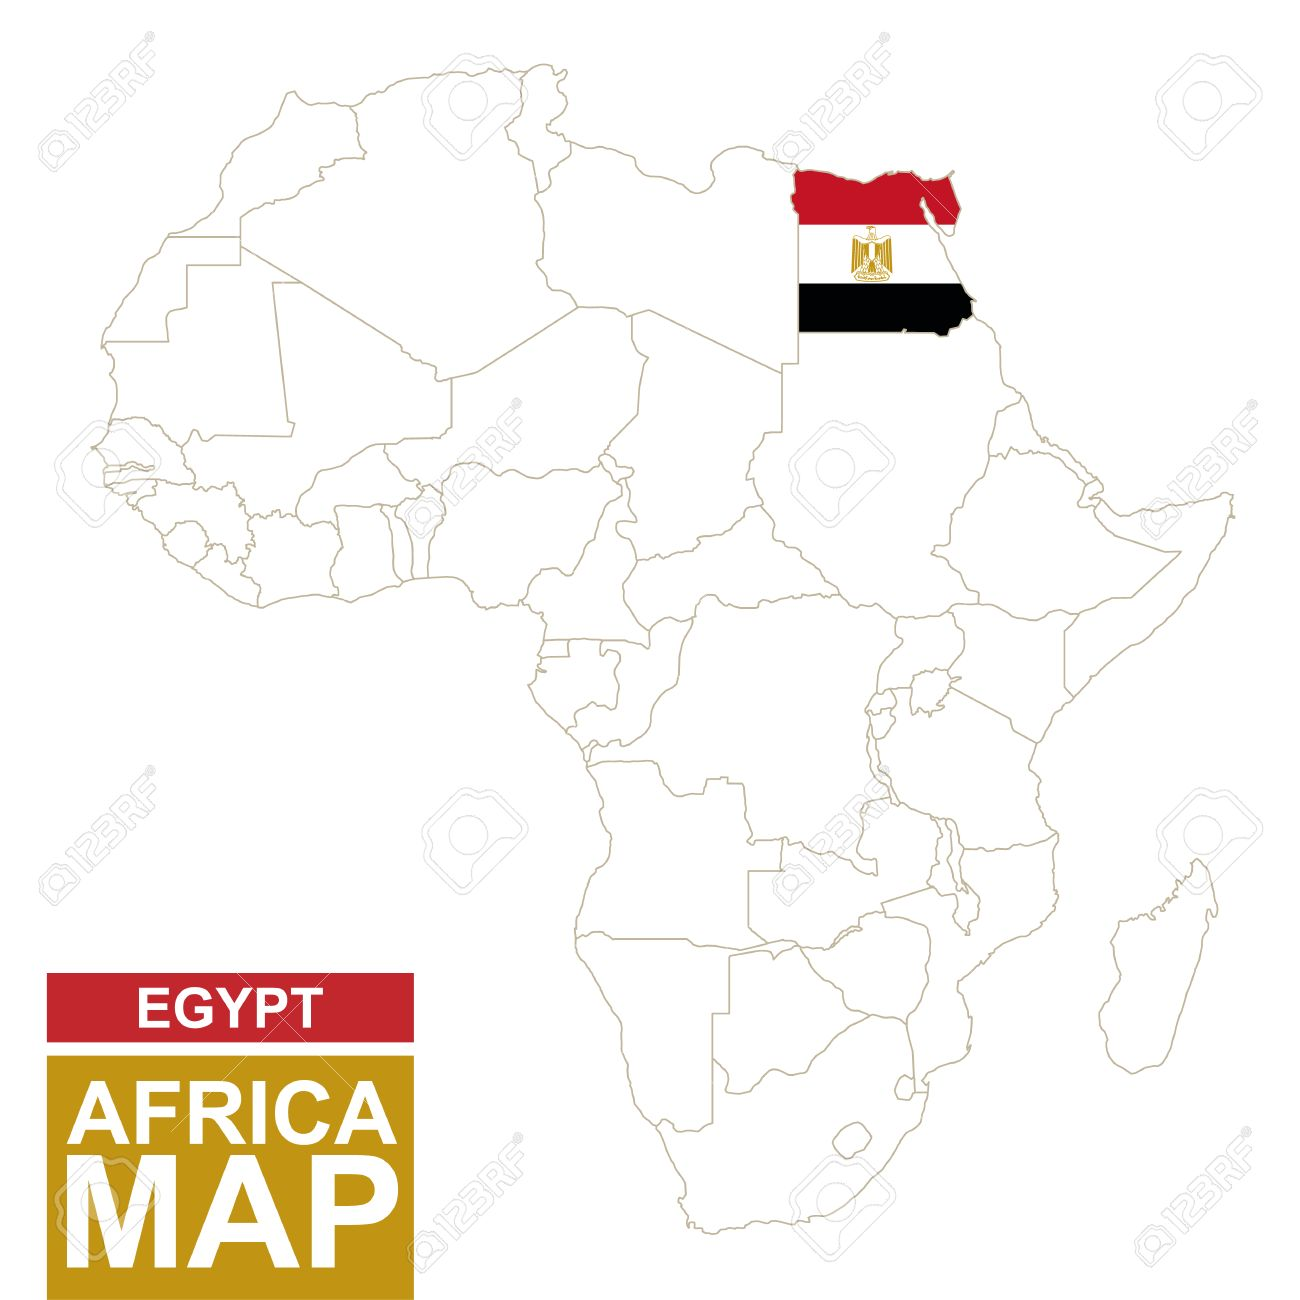 Africa Contoured Map With Highlighted Egypt Egypt Map And Flag - Map of egypt vector